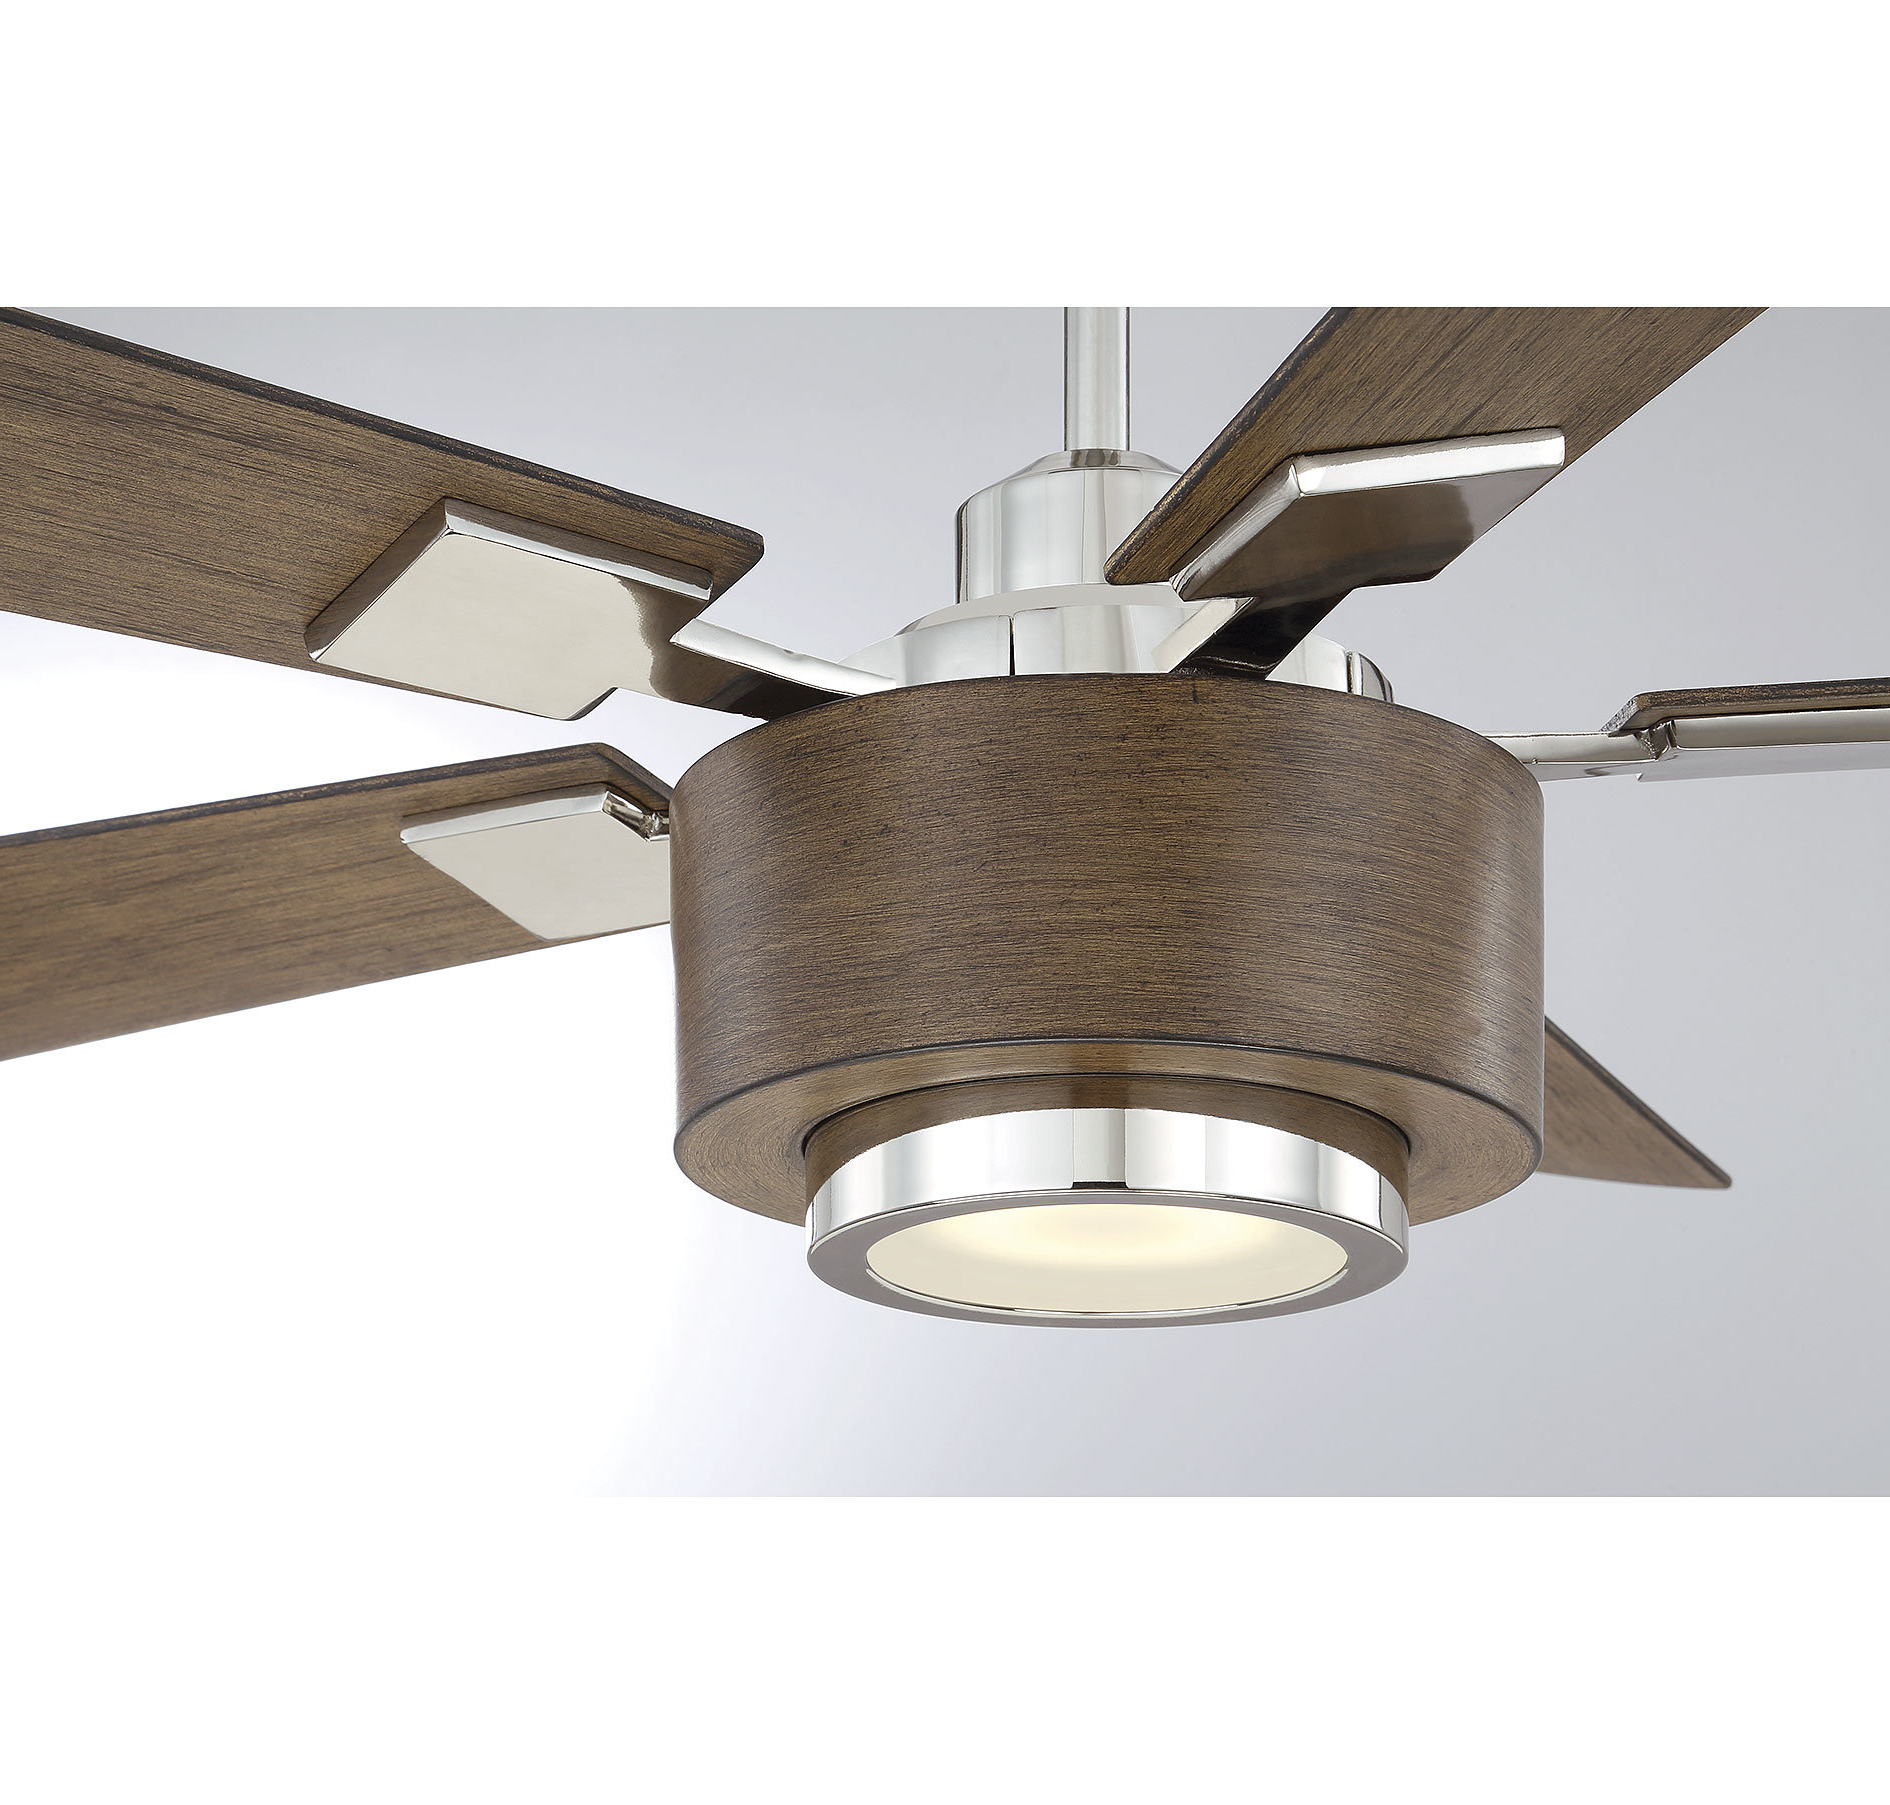 "St George 52"" Winchester 5 Blade Led Ceiling Fan With Remote In Recent Bennett 5 Blade Ceiling Fans With Remote (View 11 of 20)"